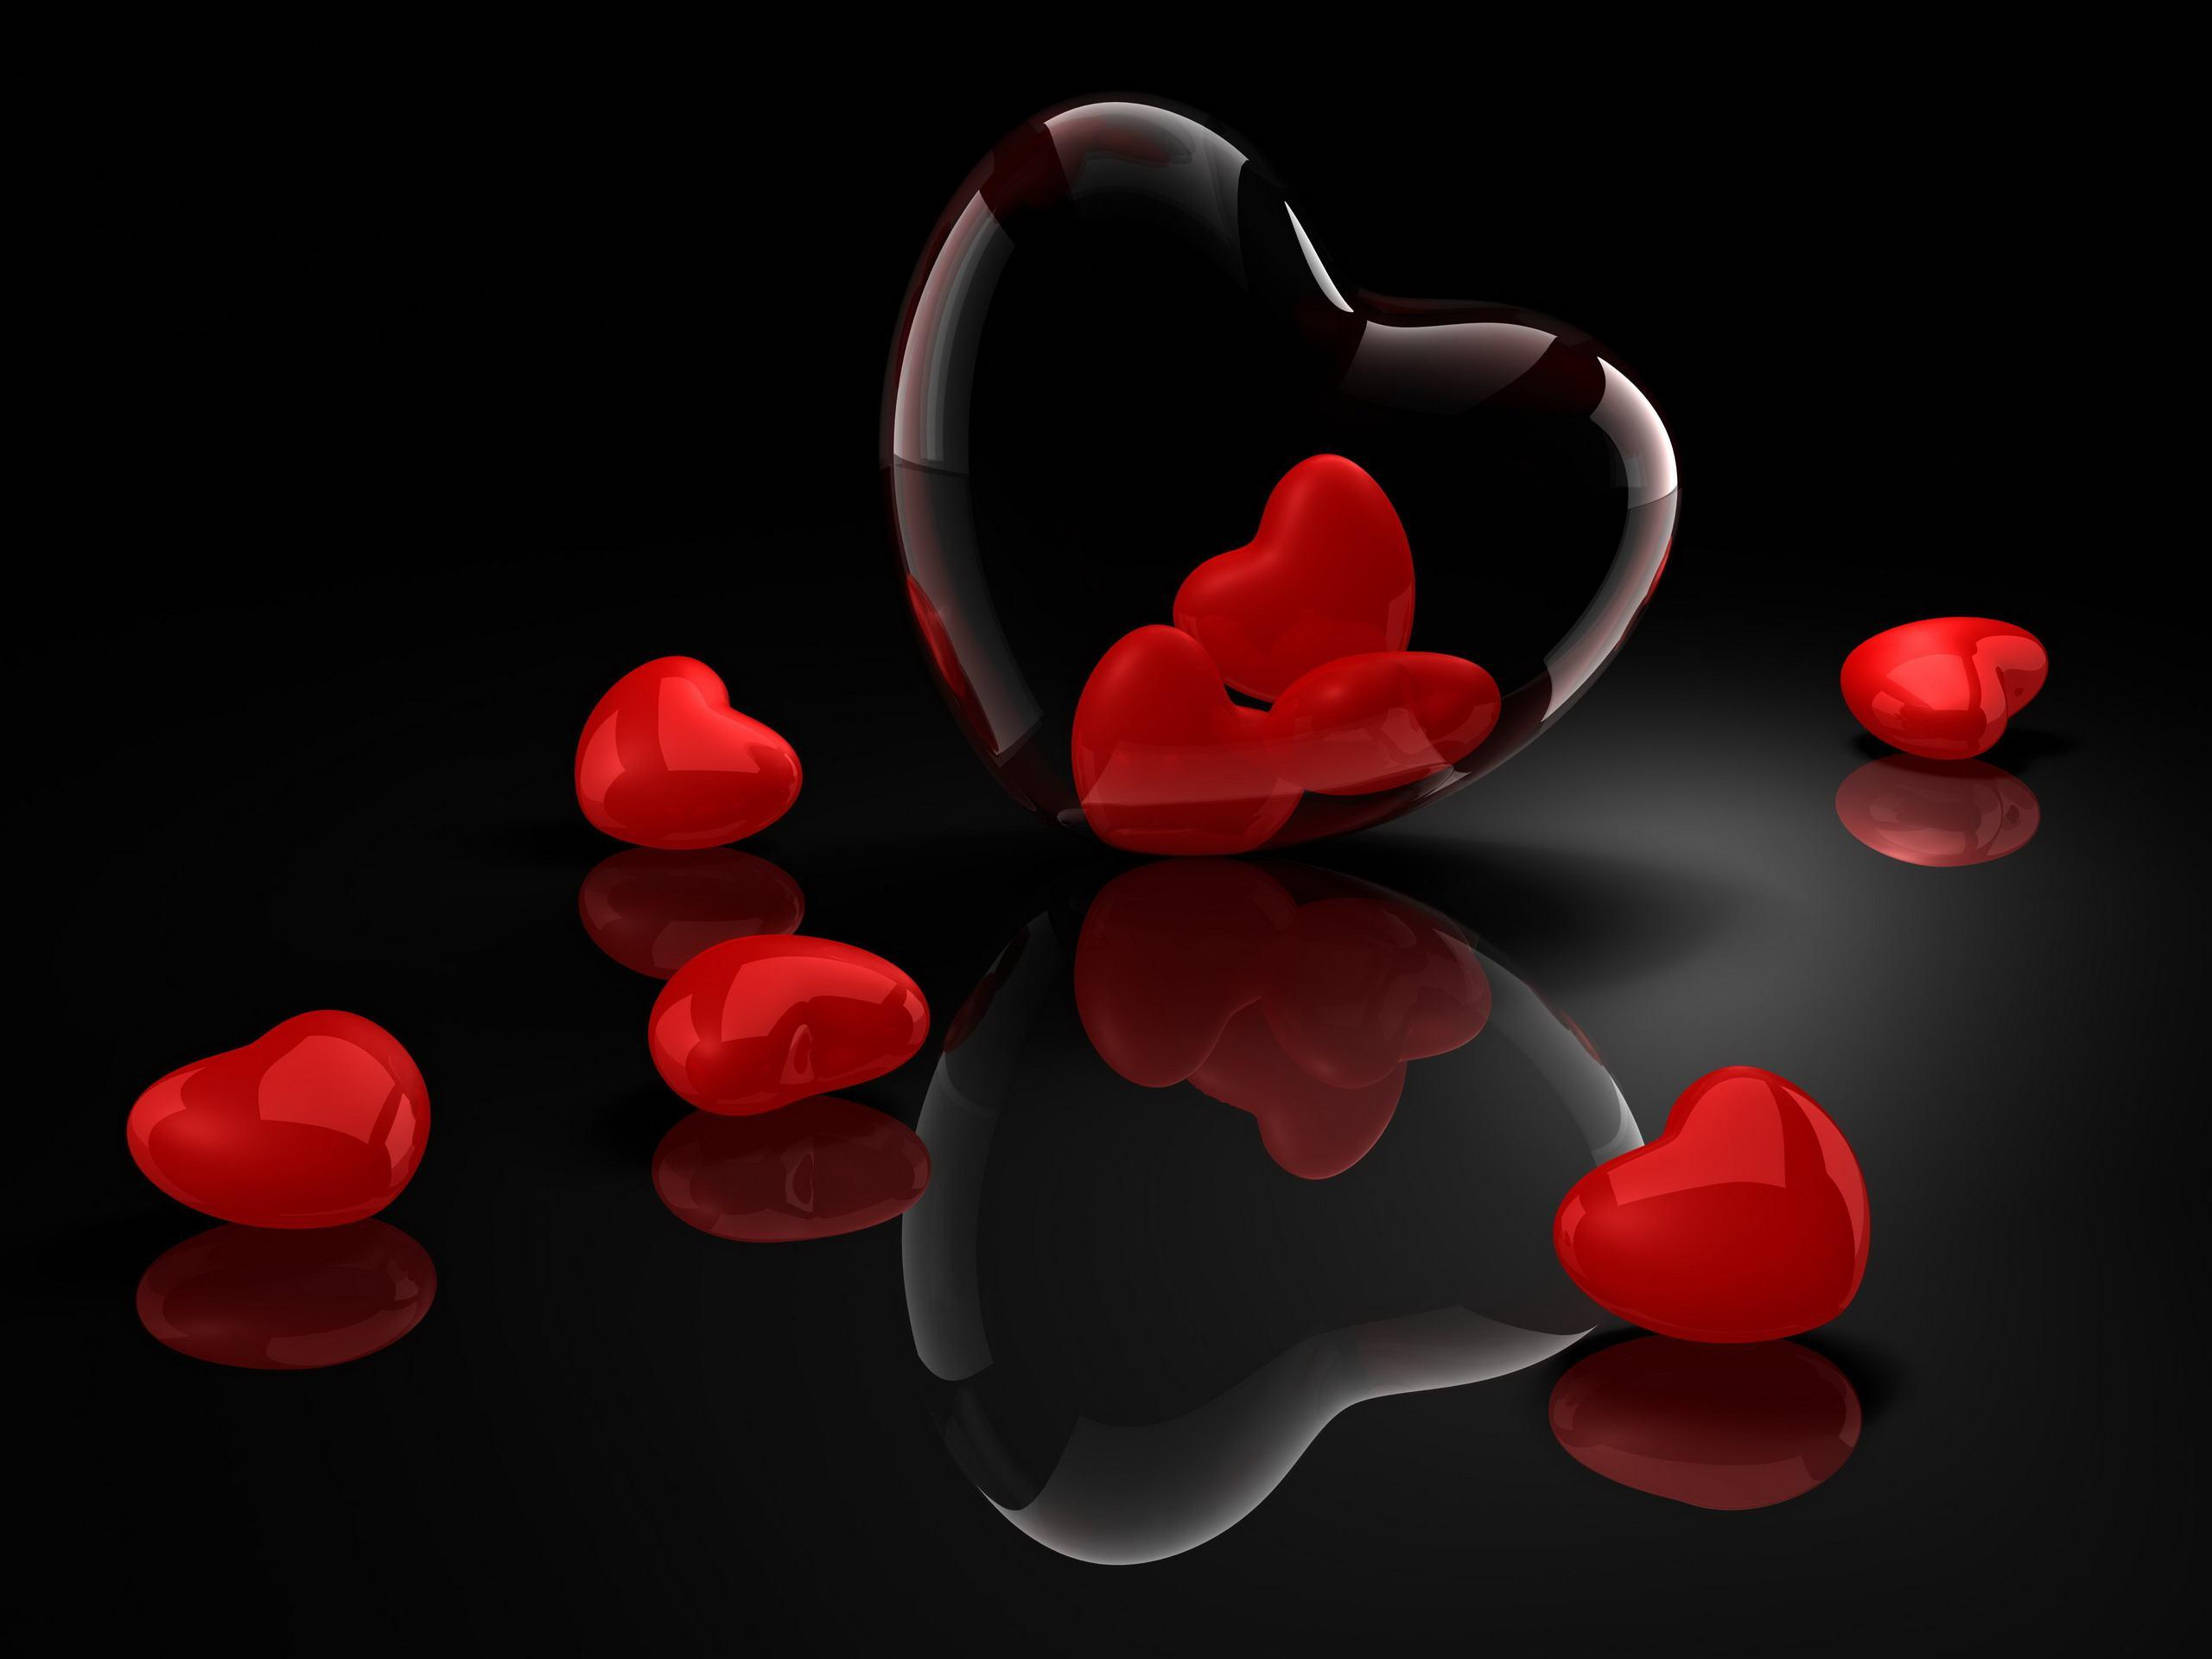 Love Wallpaper With Black Background : Heart Black Backgrounds - Wallpaper cave